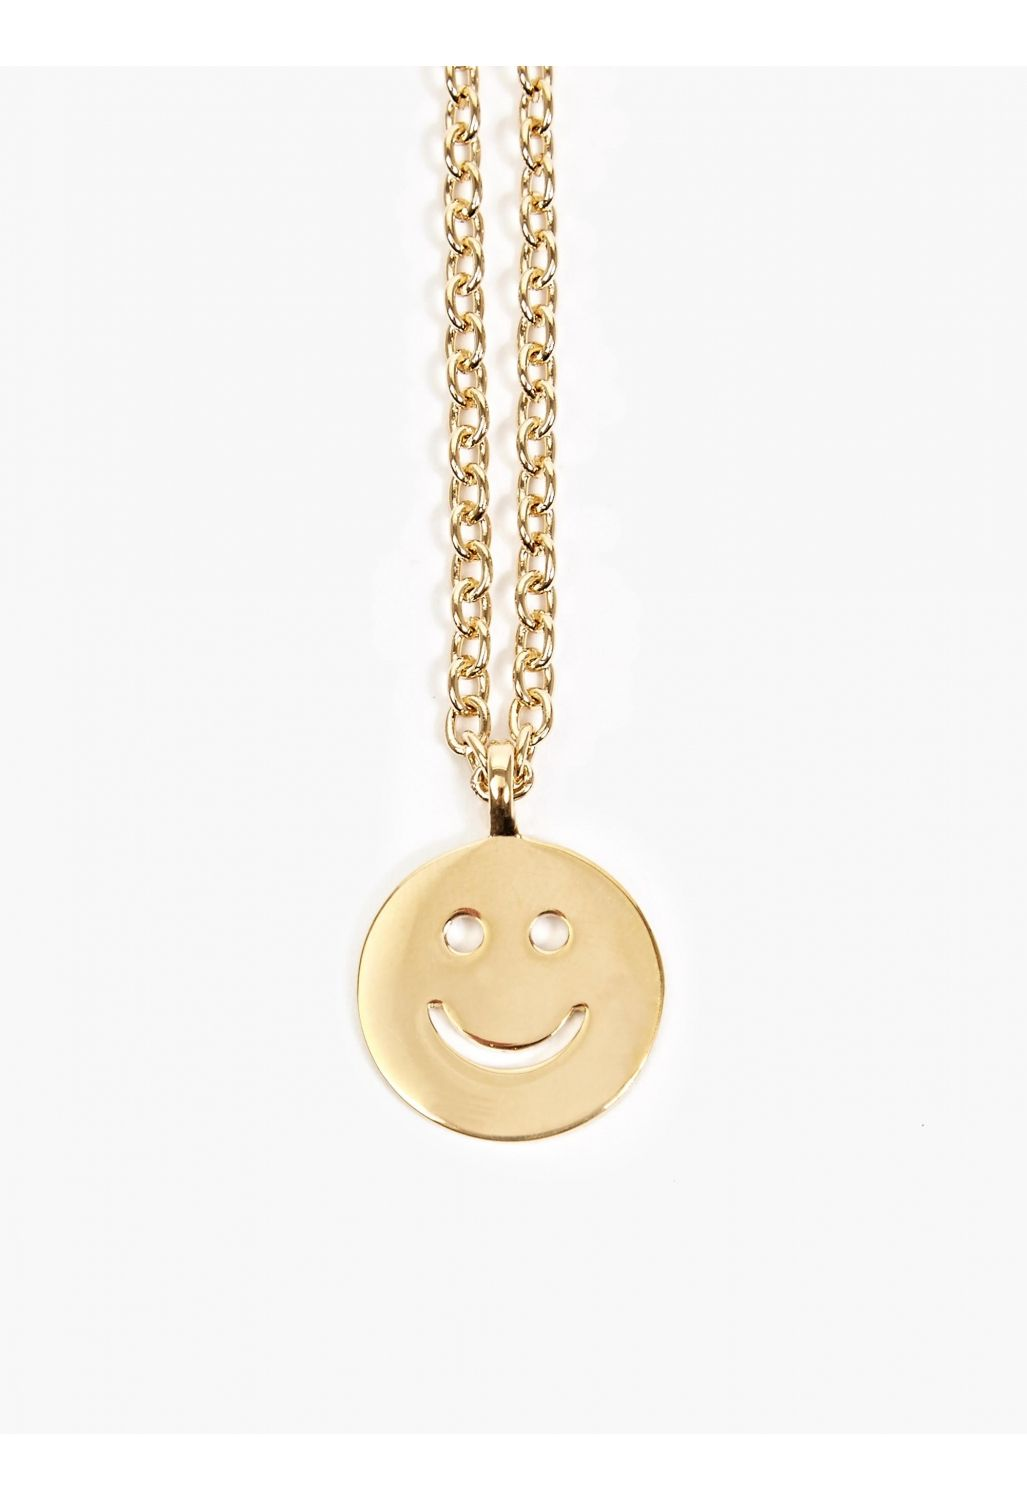 Apc gold smiley face pendant necklace fashion pinterest apc gold smiley face pendant necklace aloadofball Image collections